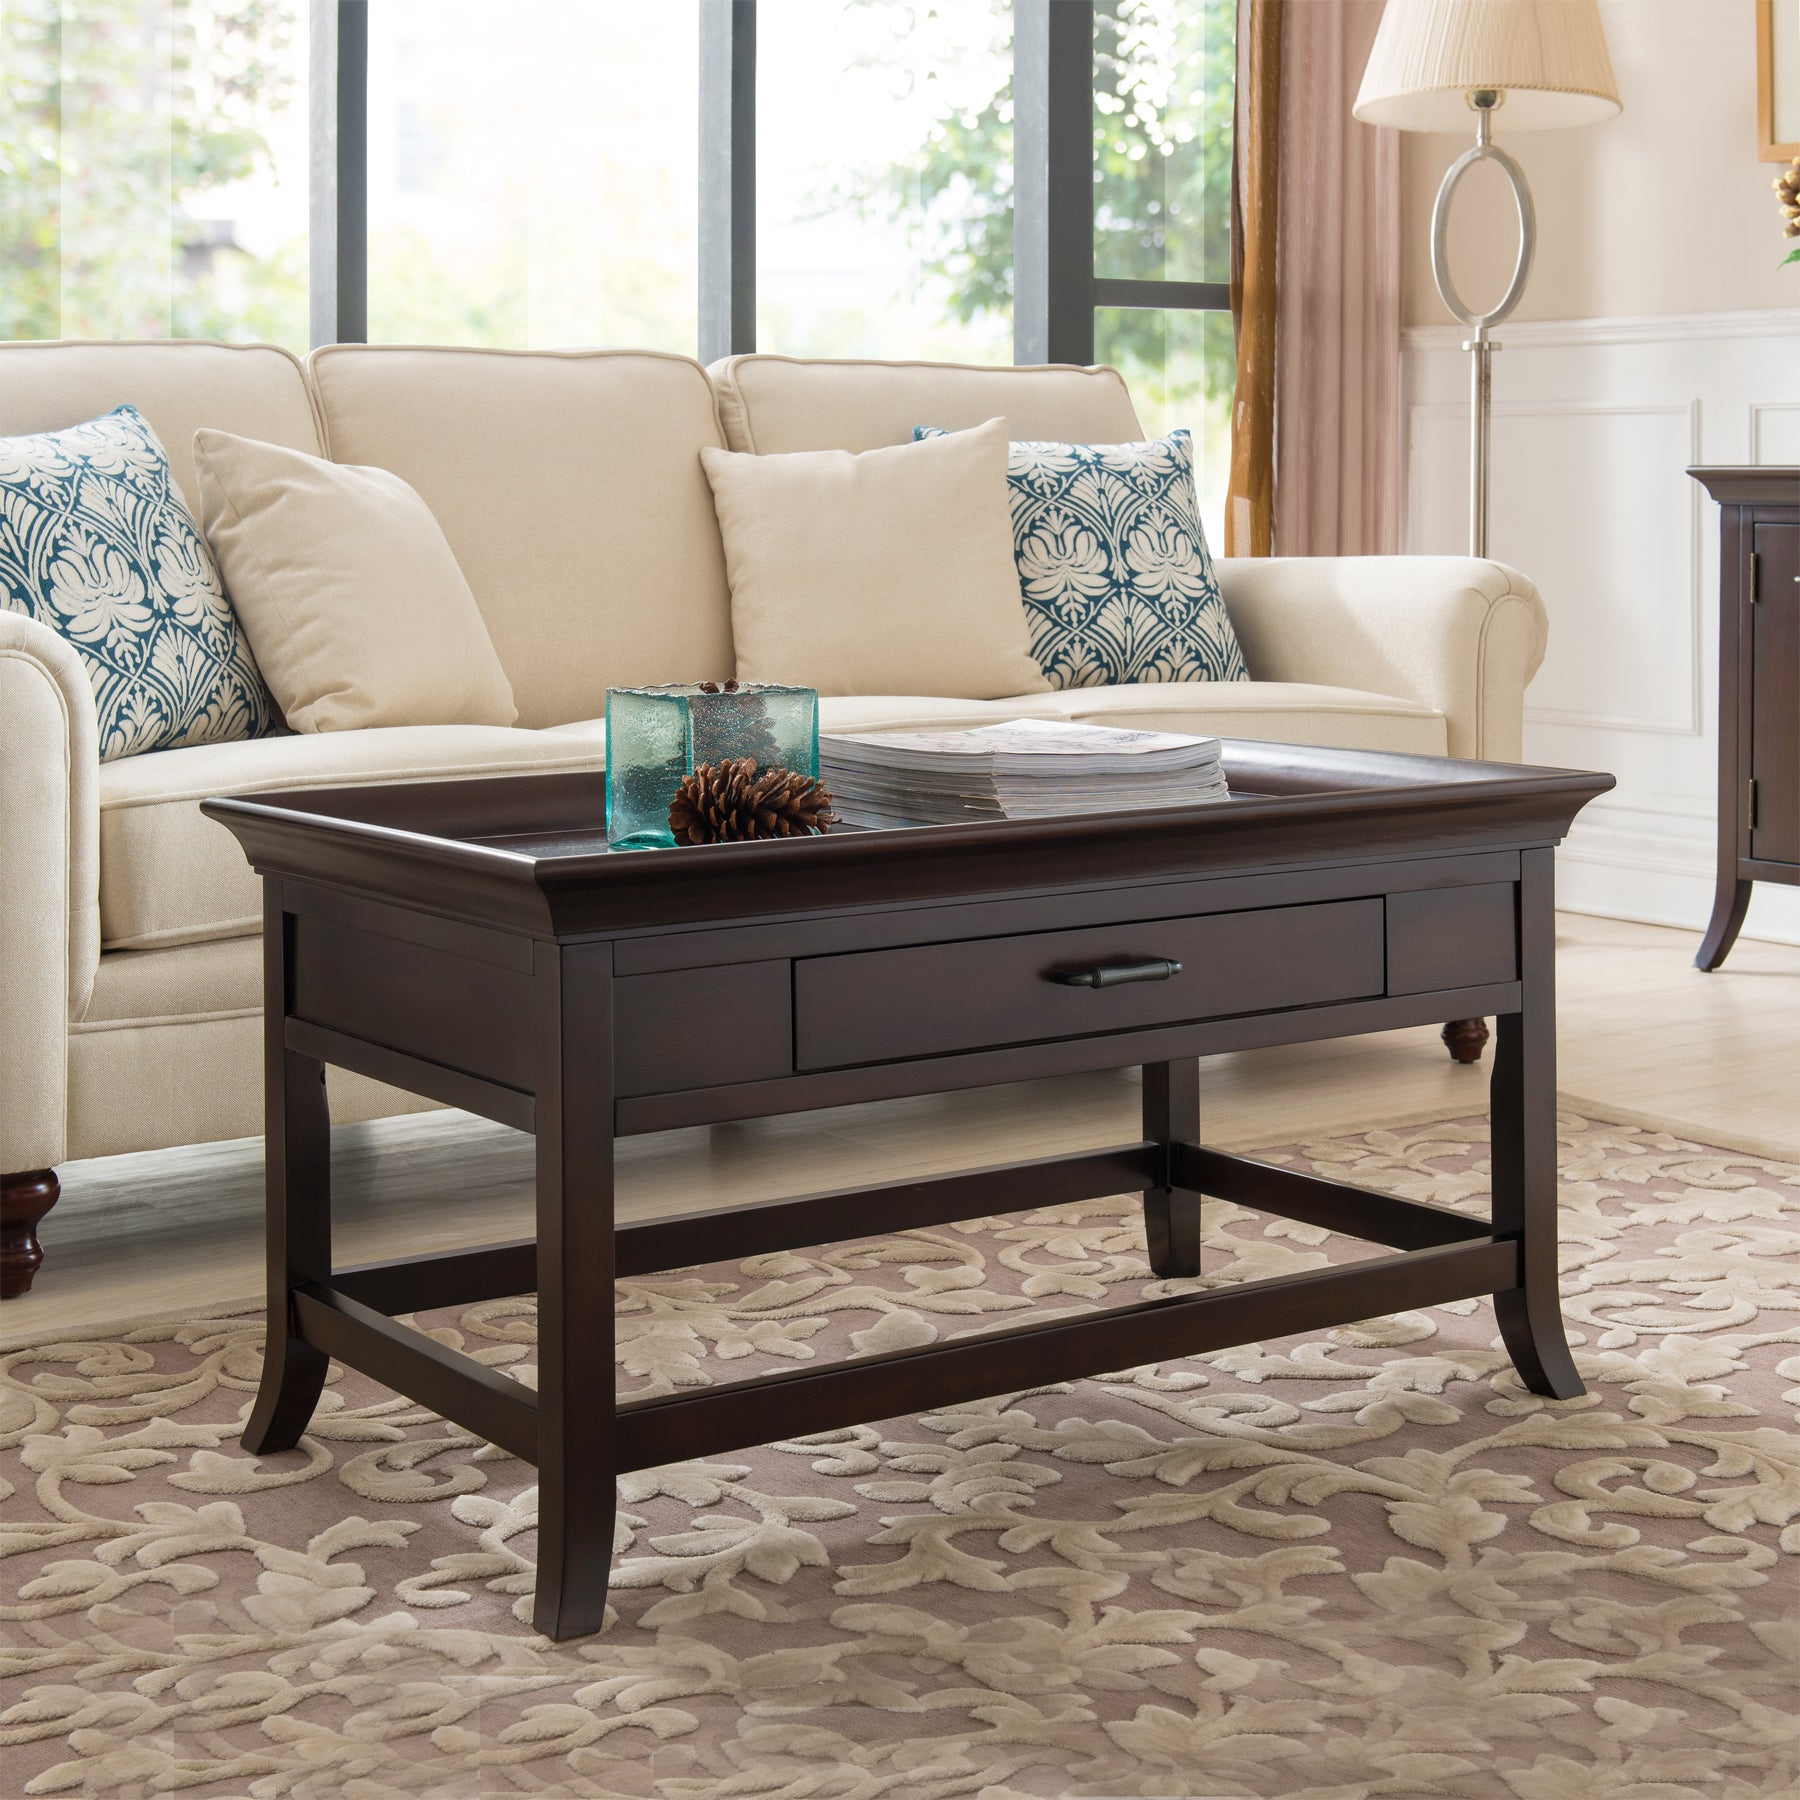 Copper Grove Coffee Tables – All About Coffee Beans Intended For Newest Copper Grove Lantana Coffee Tables (View 3 of 20)